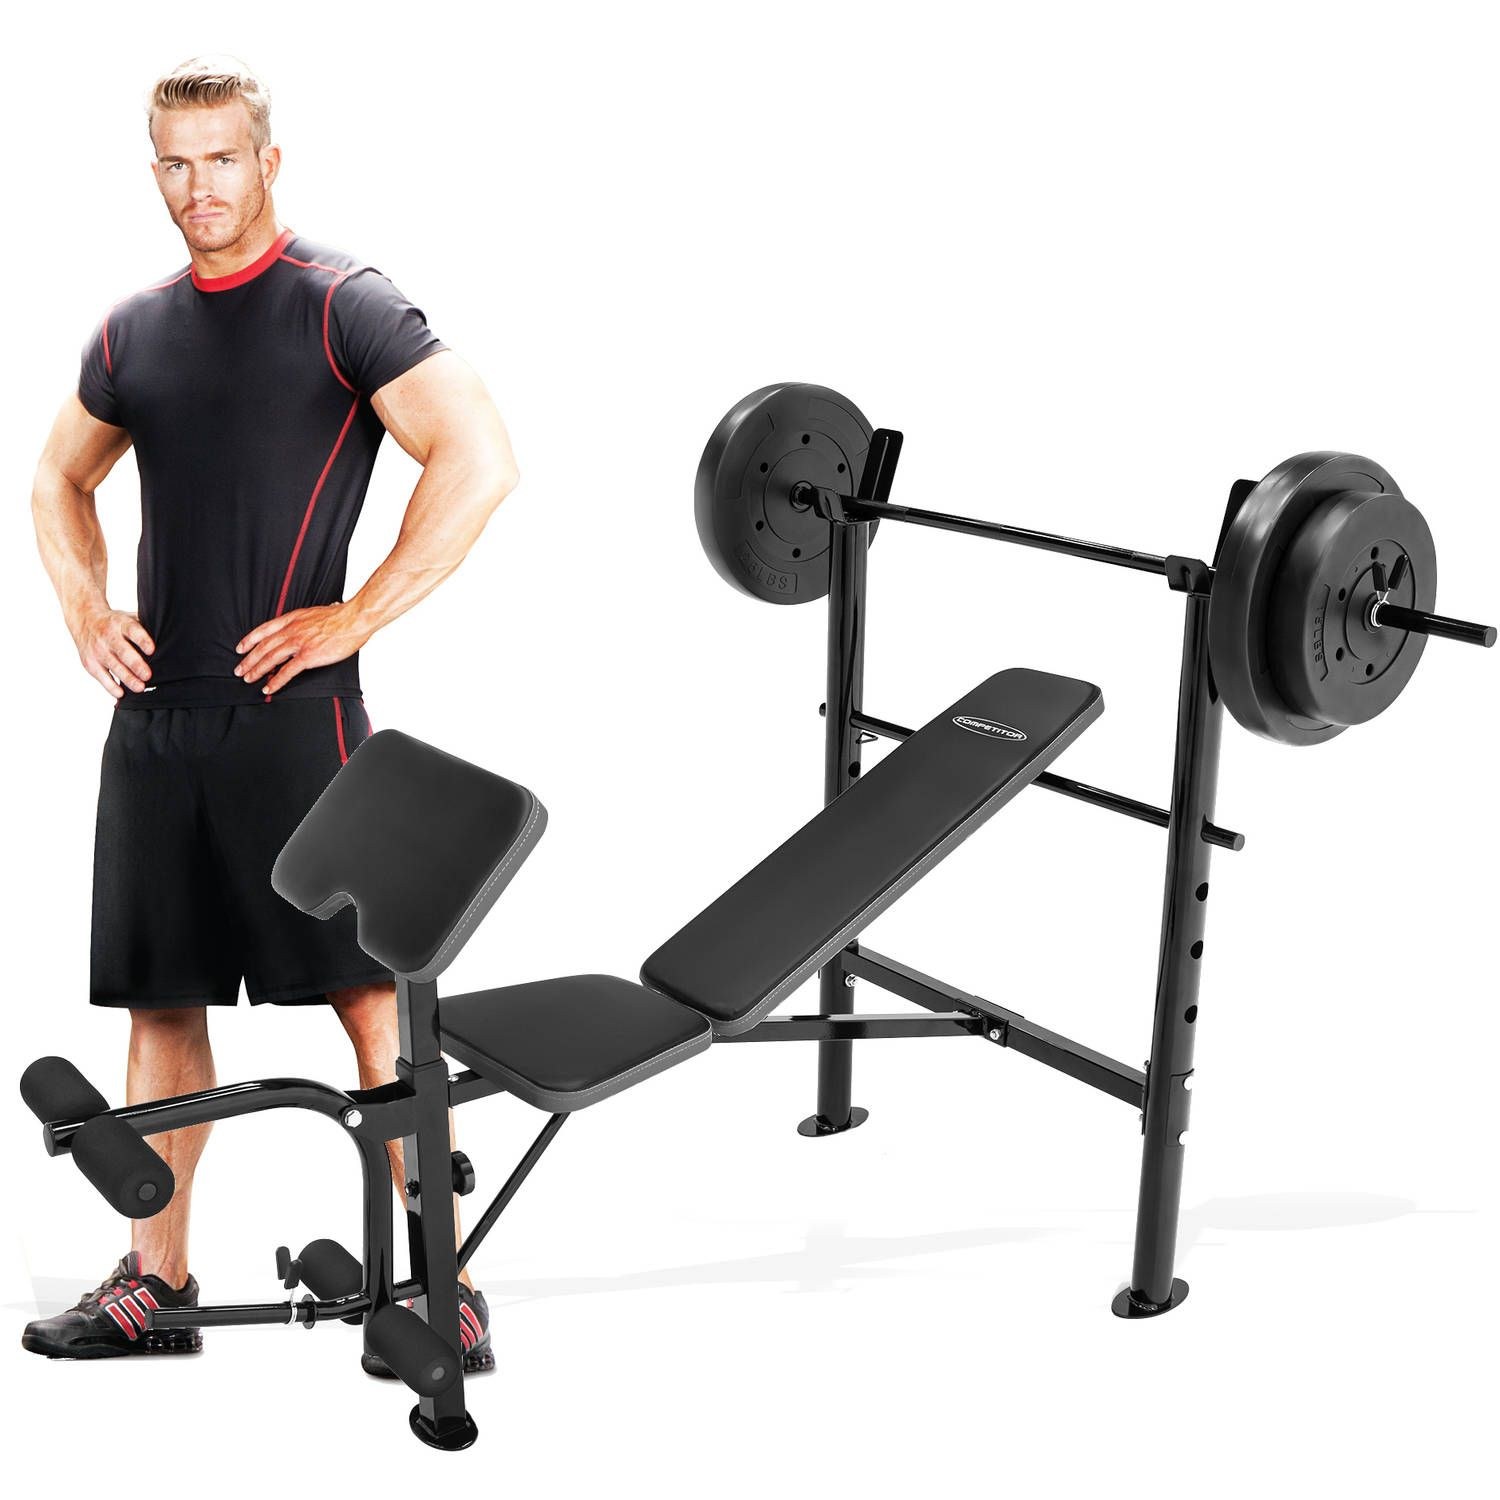 Marcy competitor combo bench with 80 lbs weight set cb 20110 deal best fitness equipments Bench and weight set